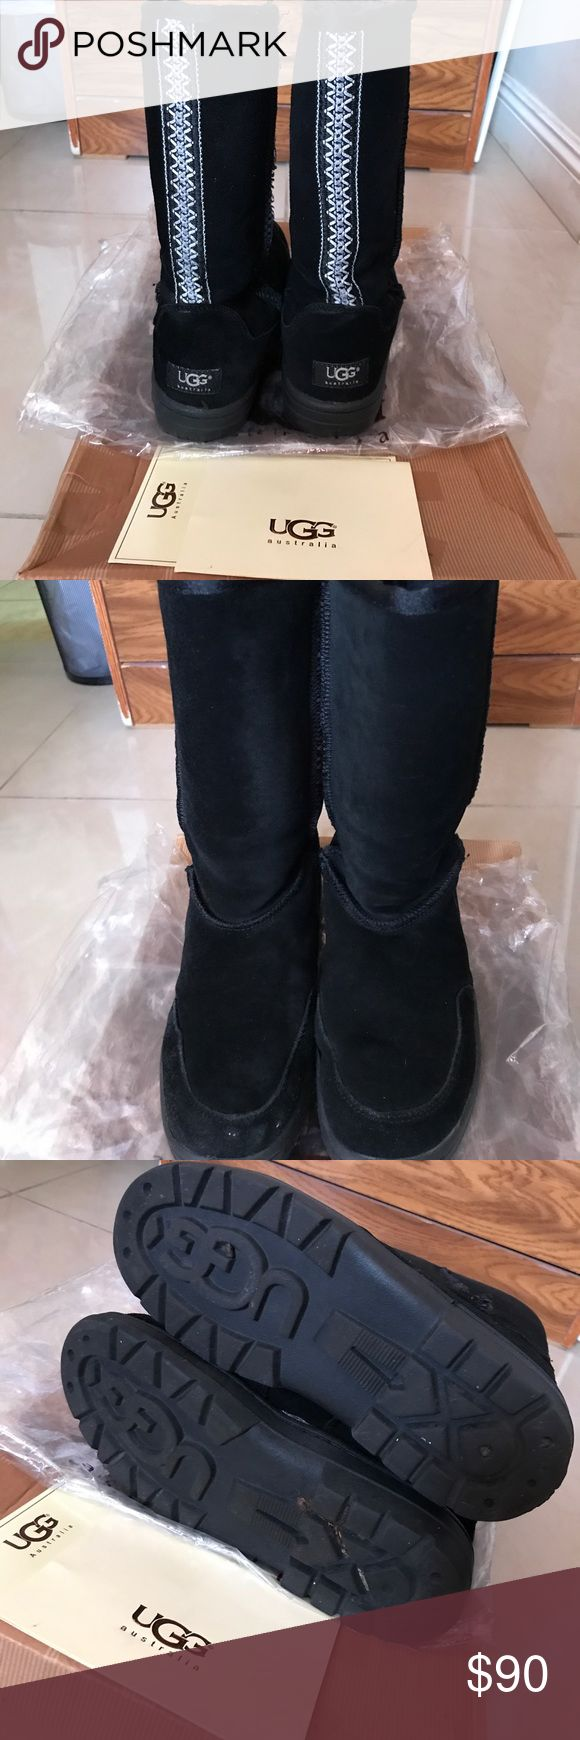 UGG Australia Boots Good condition. Very warm and comfortable UGG Shoes Winter & Rain Boots